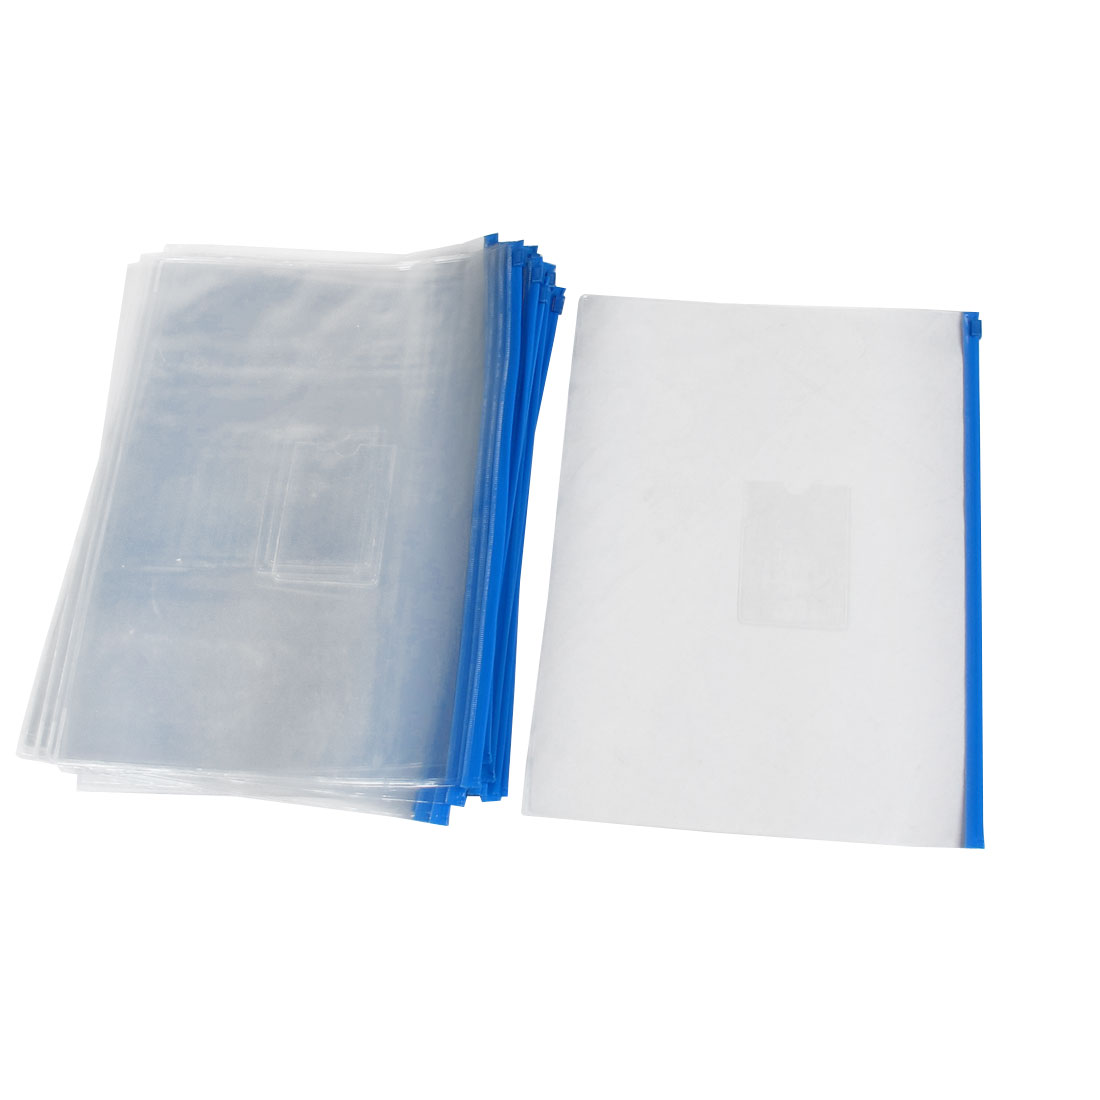 20pcs Blue Clear Plastic Slider Zip Lock Bags Files Holder for A4 Paper